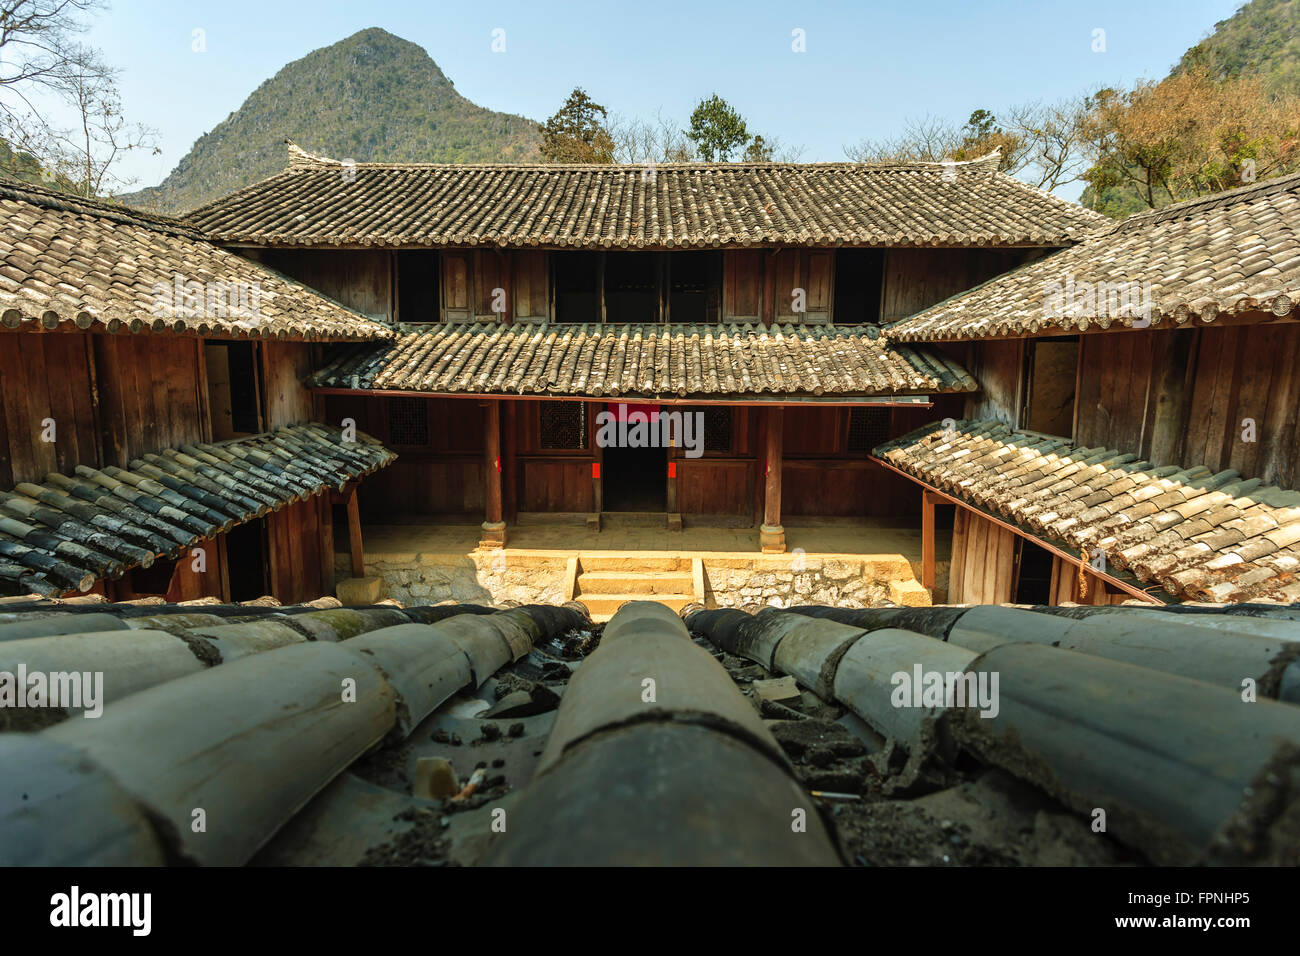 Ha Giang, Vietnam - March 18, 2016: Old building at Sa Phin Town in Ha giang province, Vietnam Stock Photo